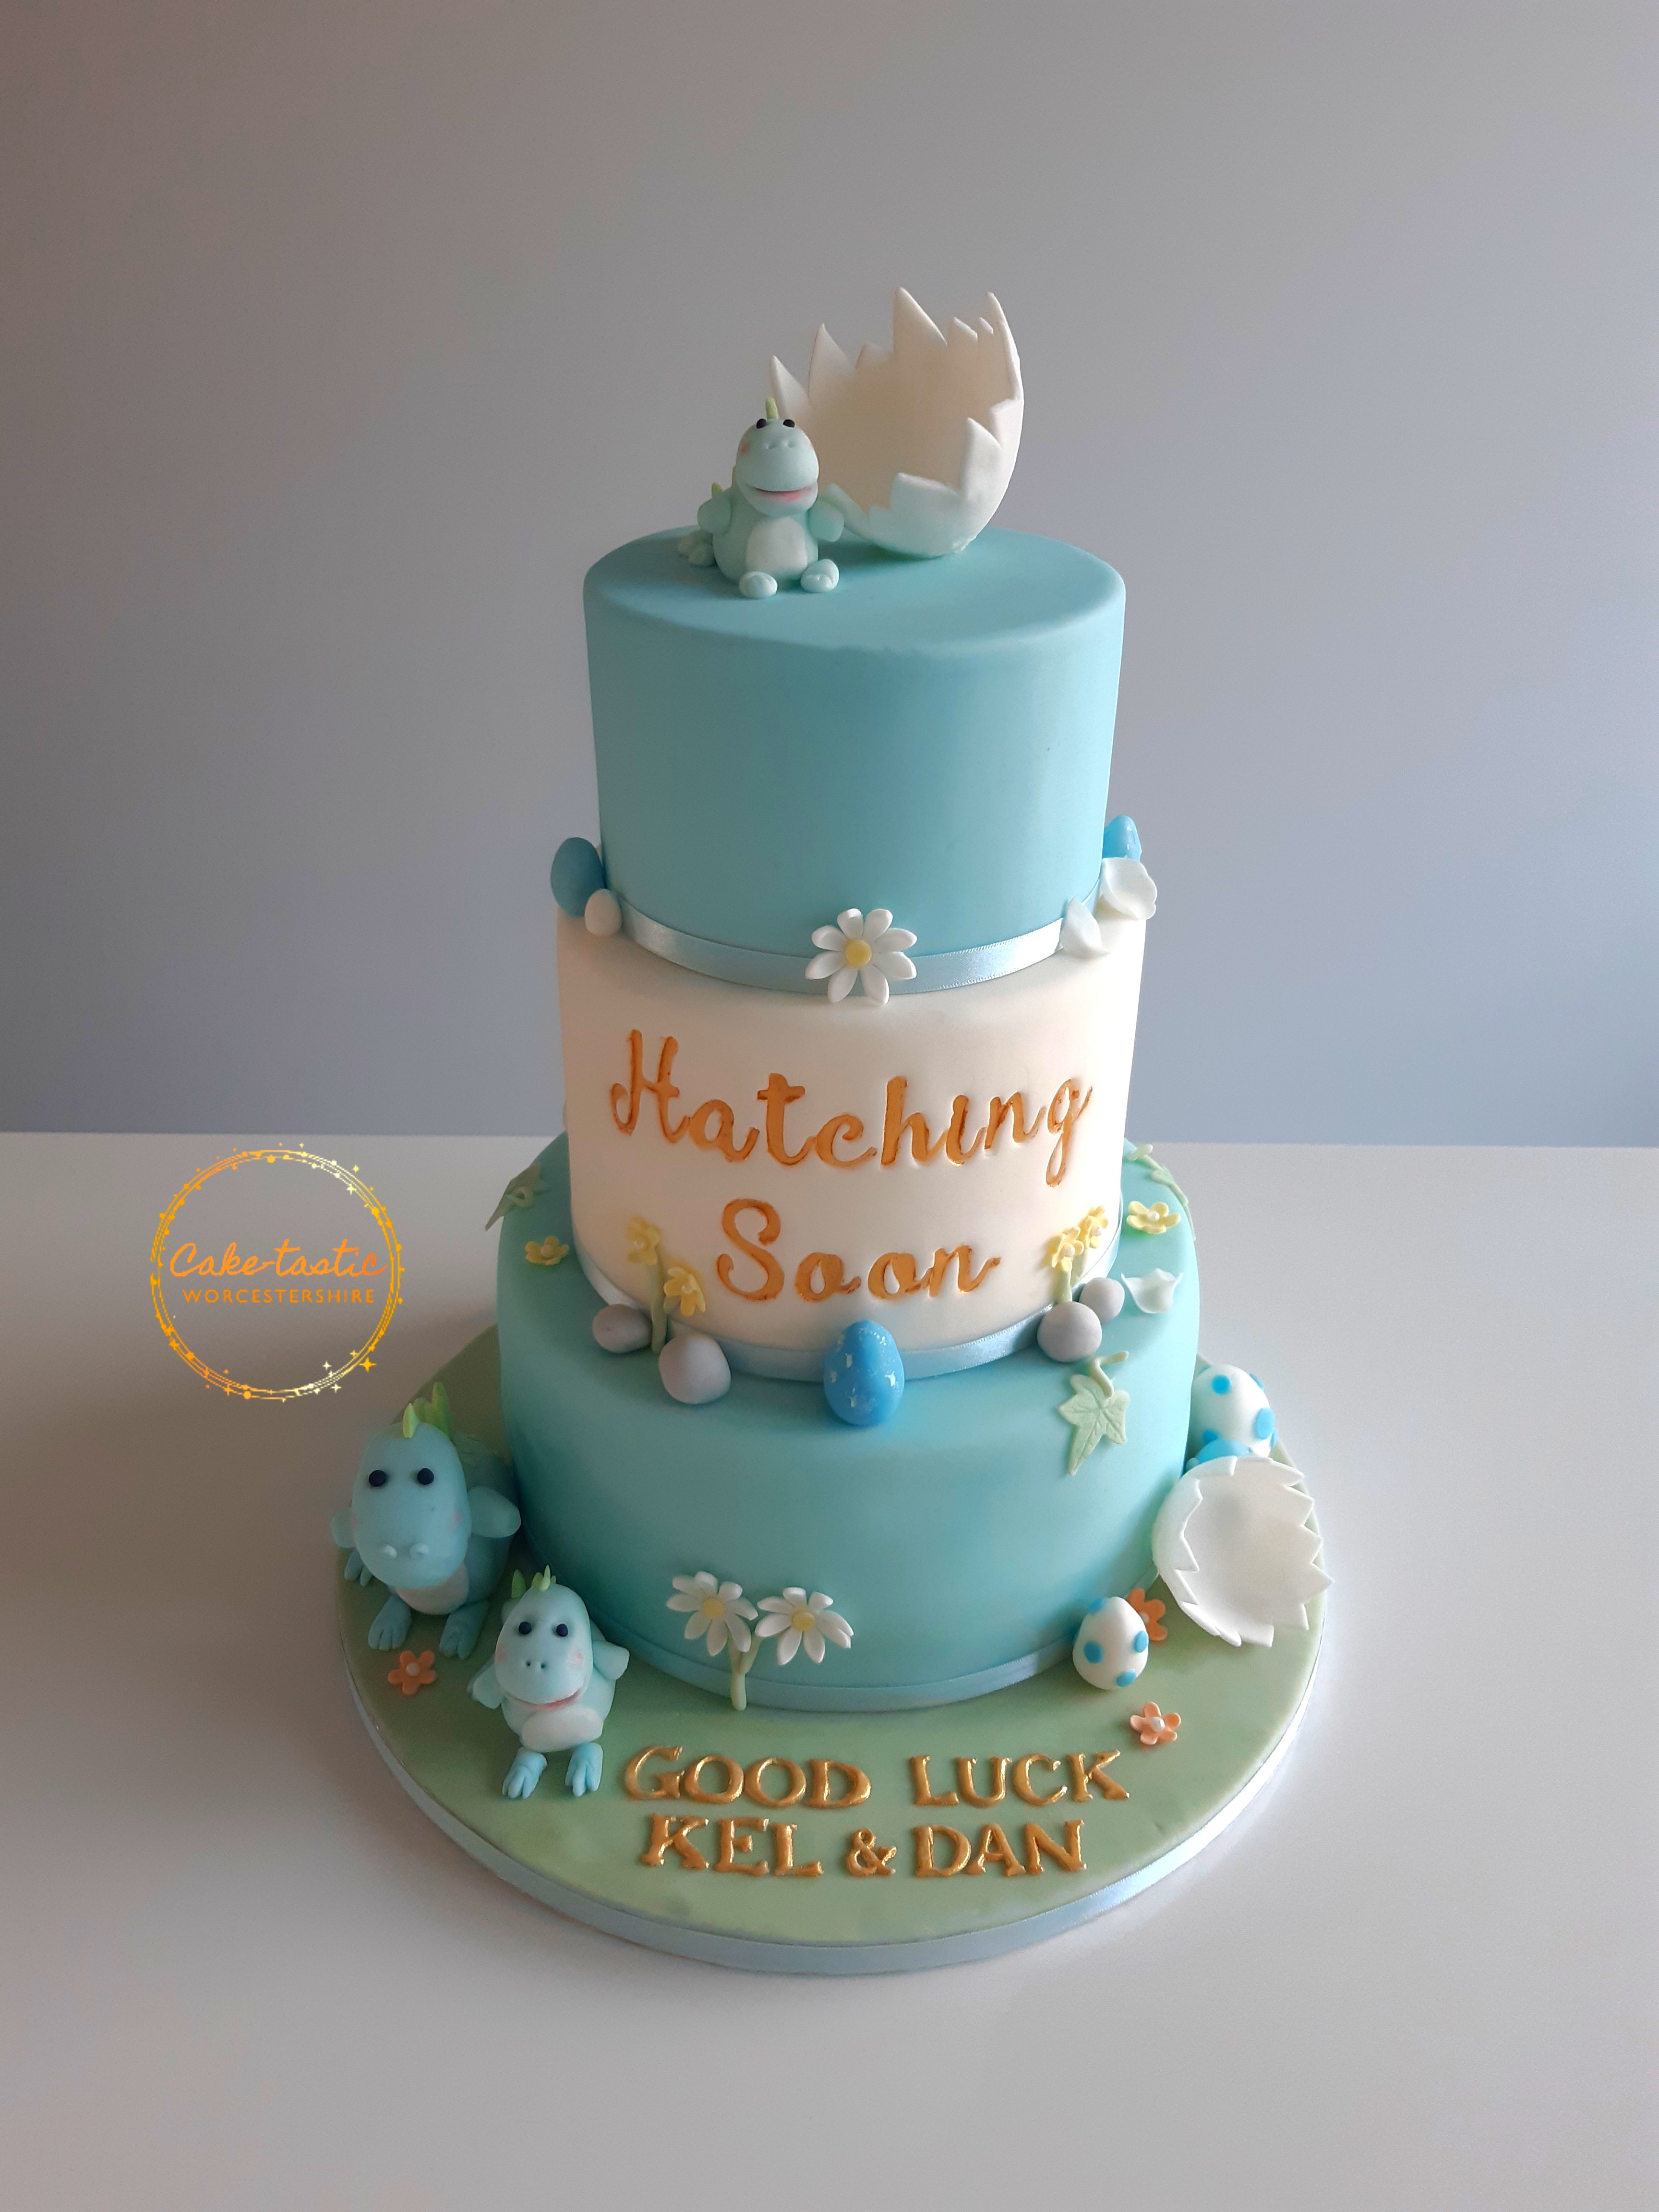 Baby Shower Cake - Hatching Soon